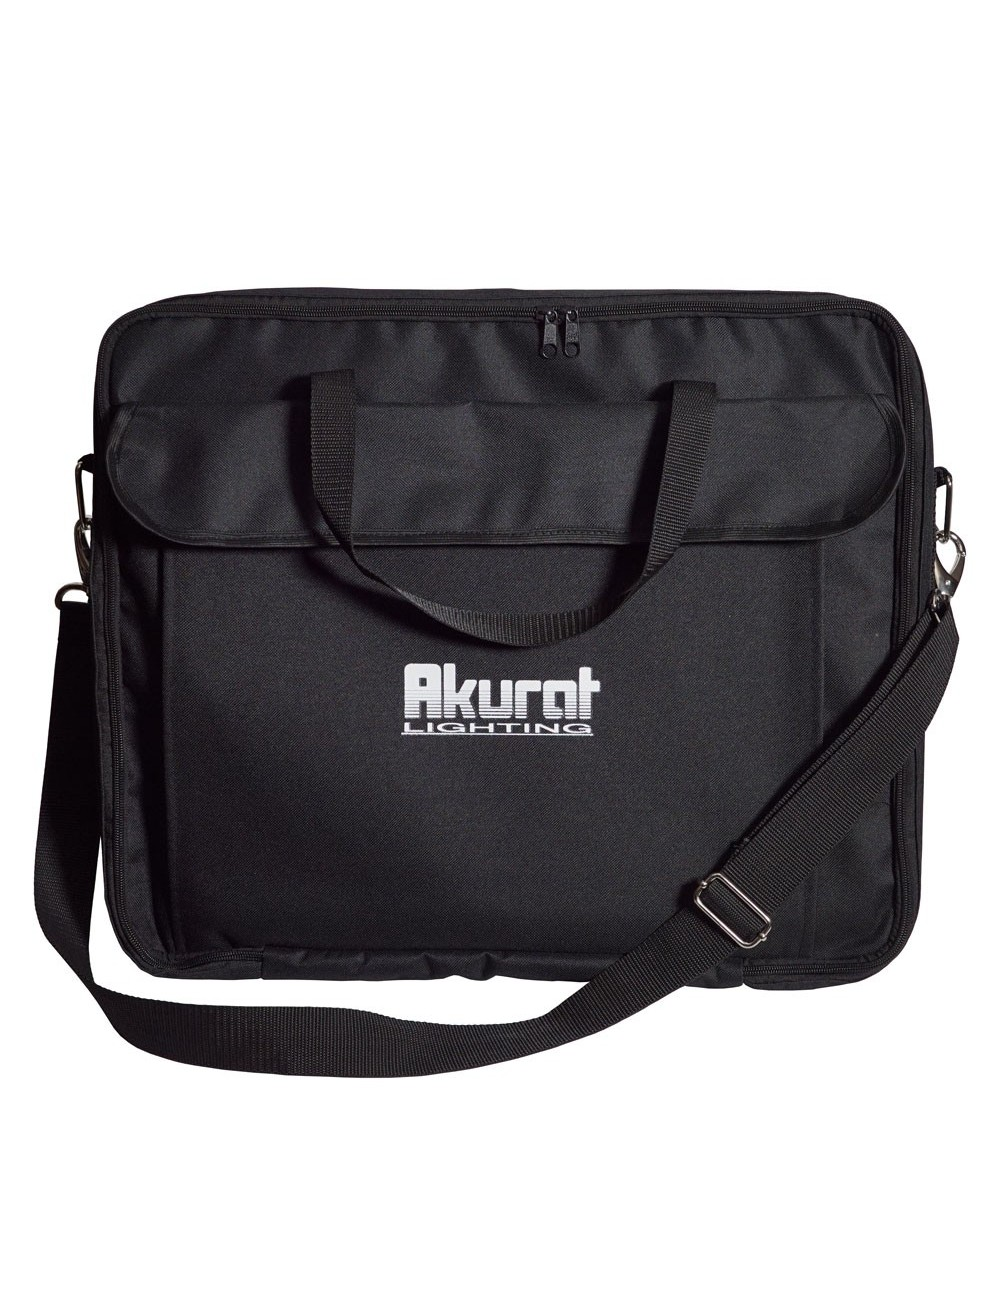 Bag for S4